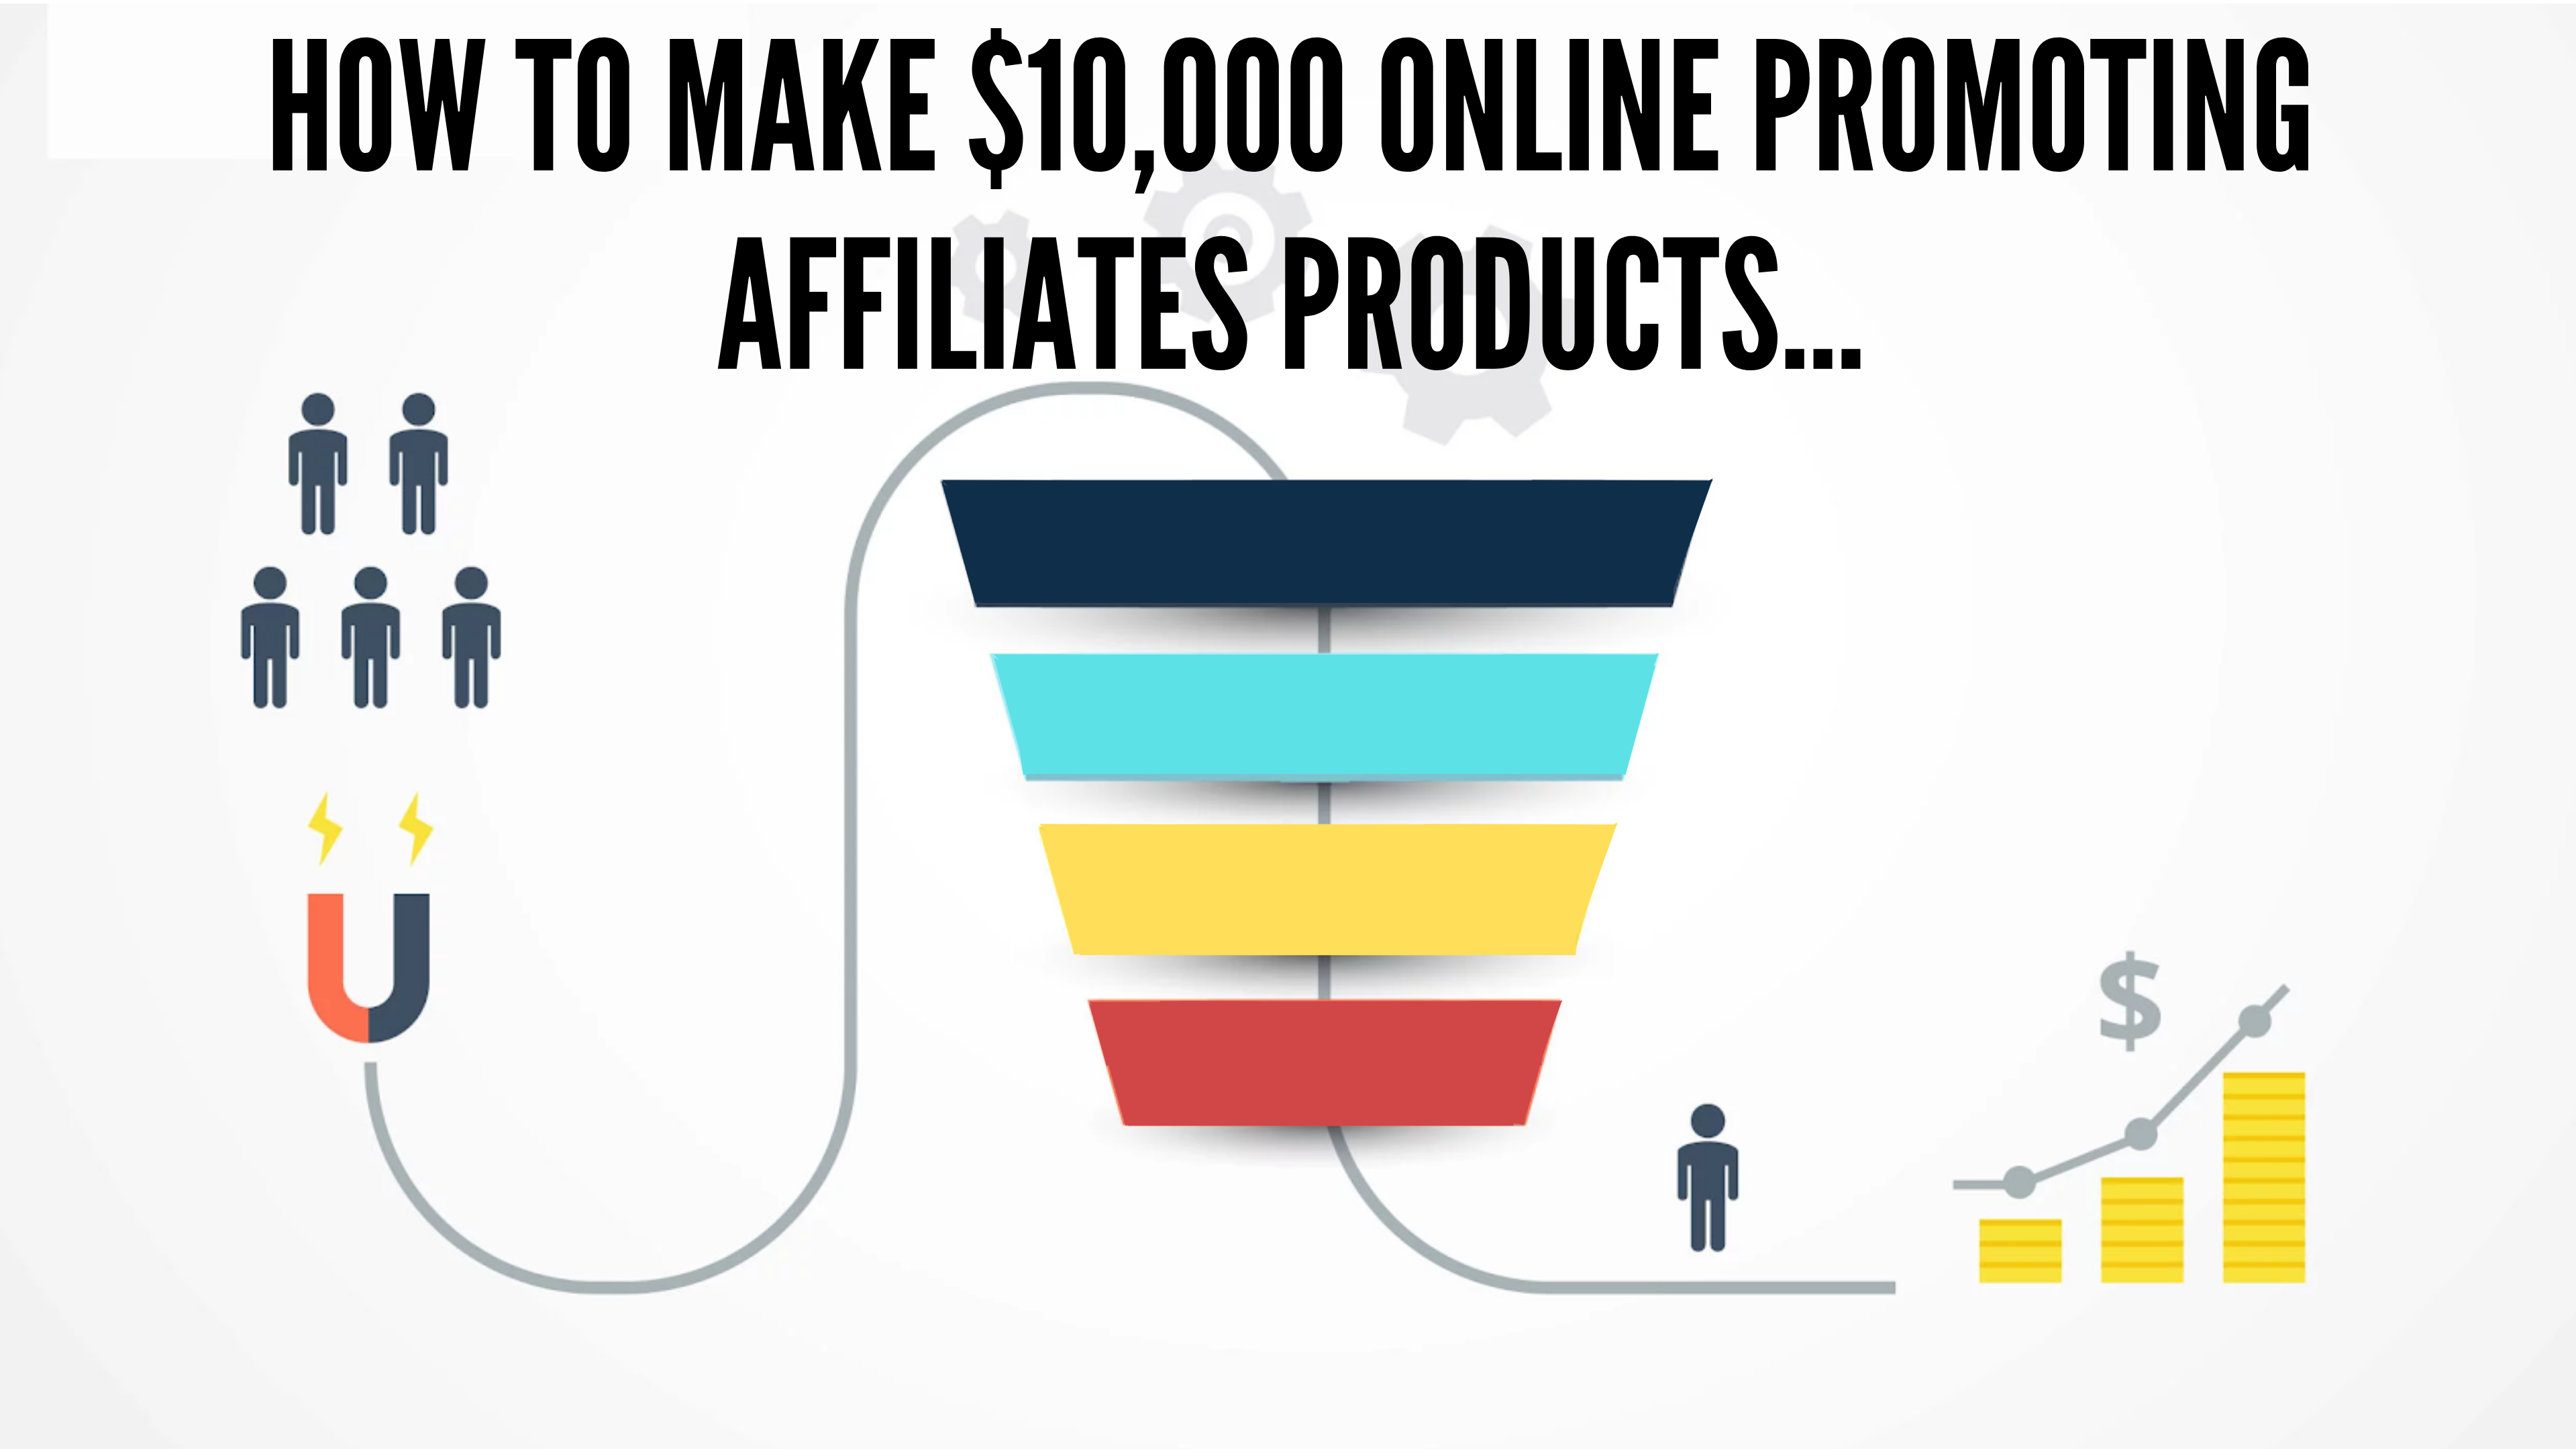 (9pm Online Session) How to make $10,000 online promoting affiliates products...